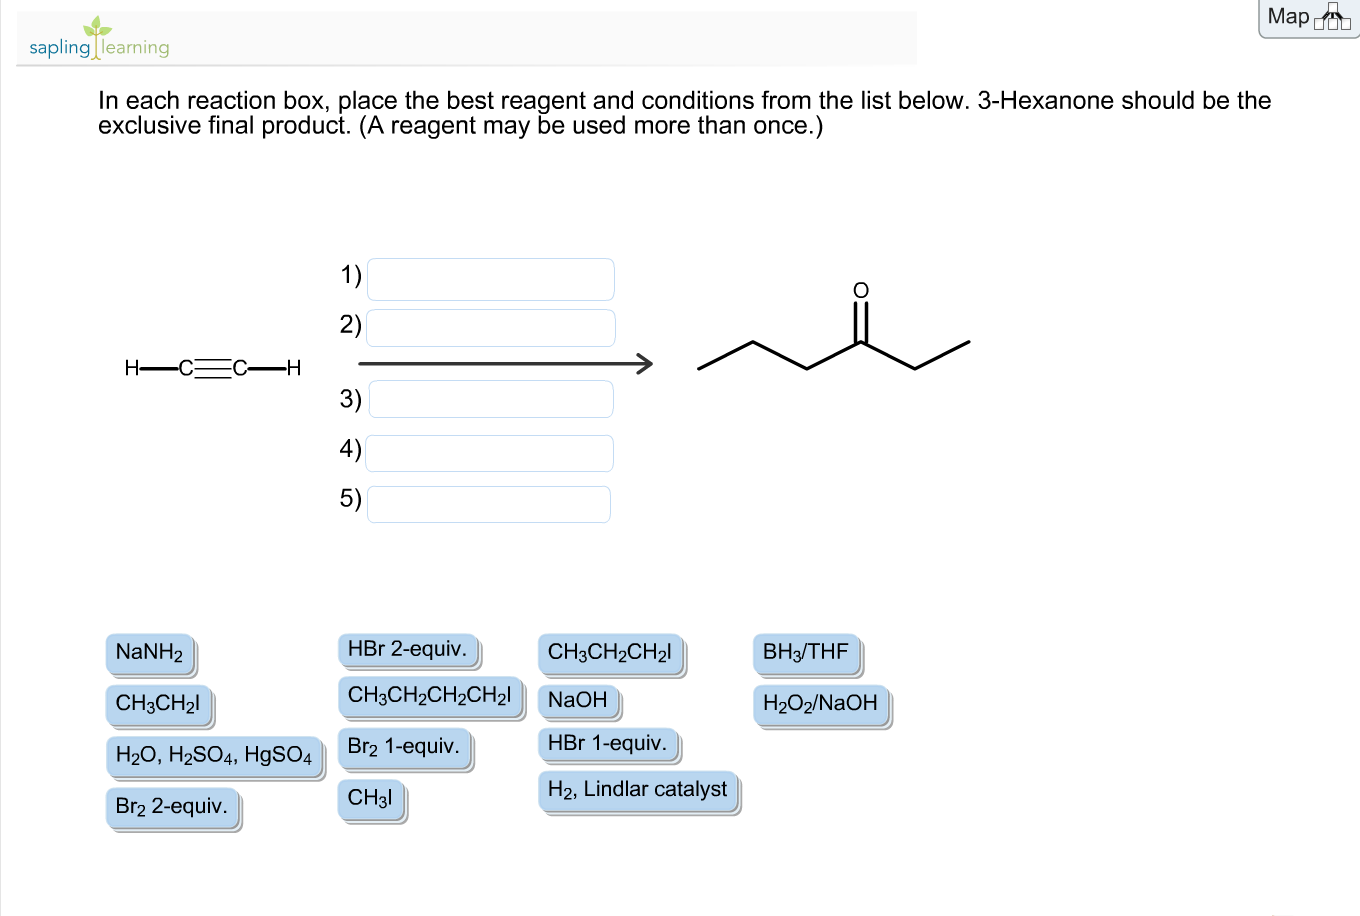 in each reaction box place the best reagent and conditions from the list below oh-#25